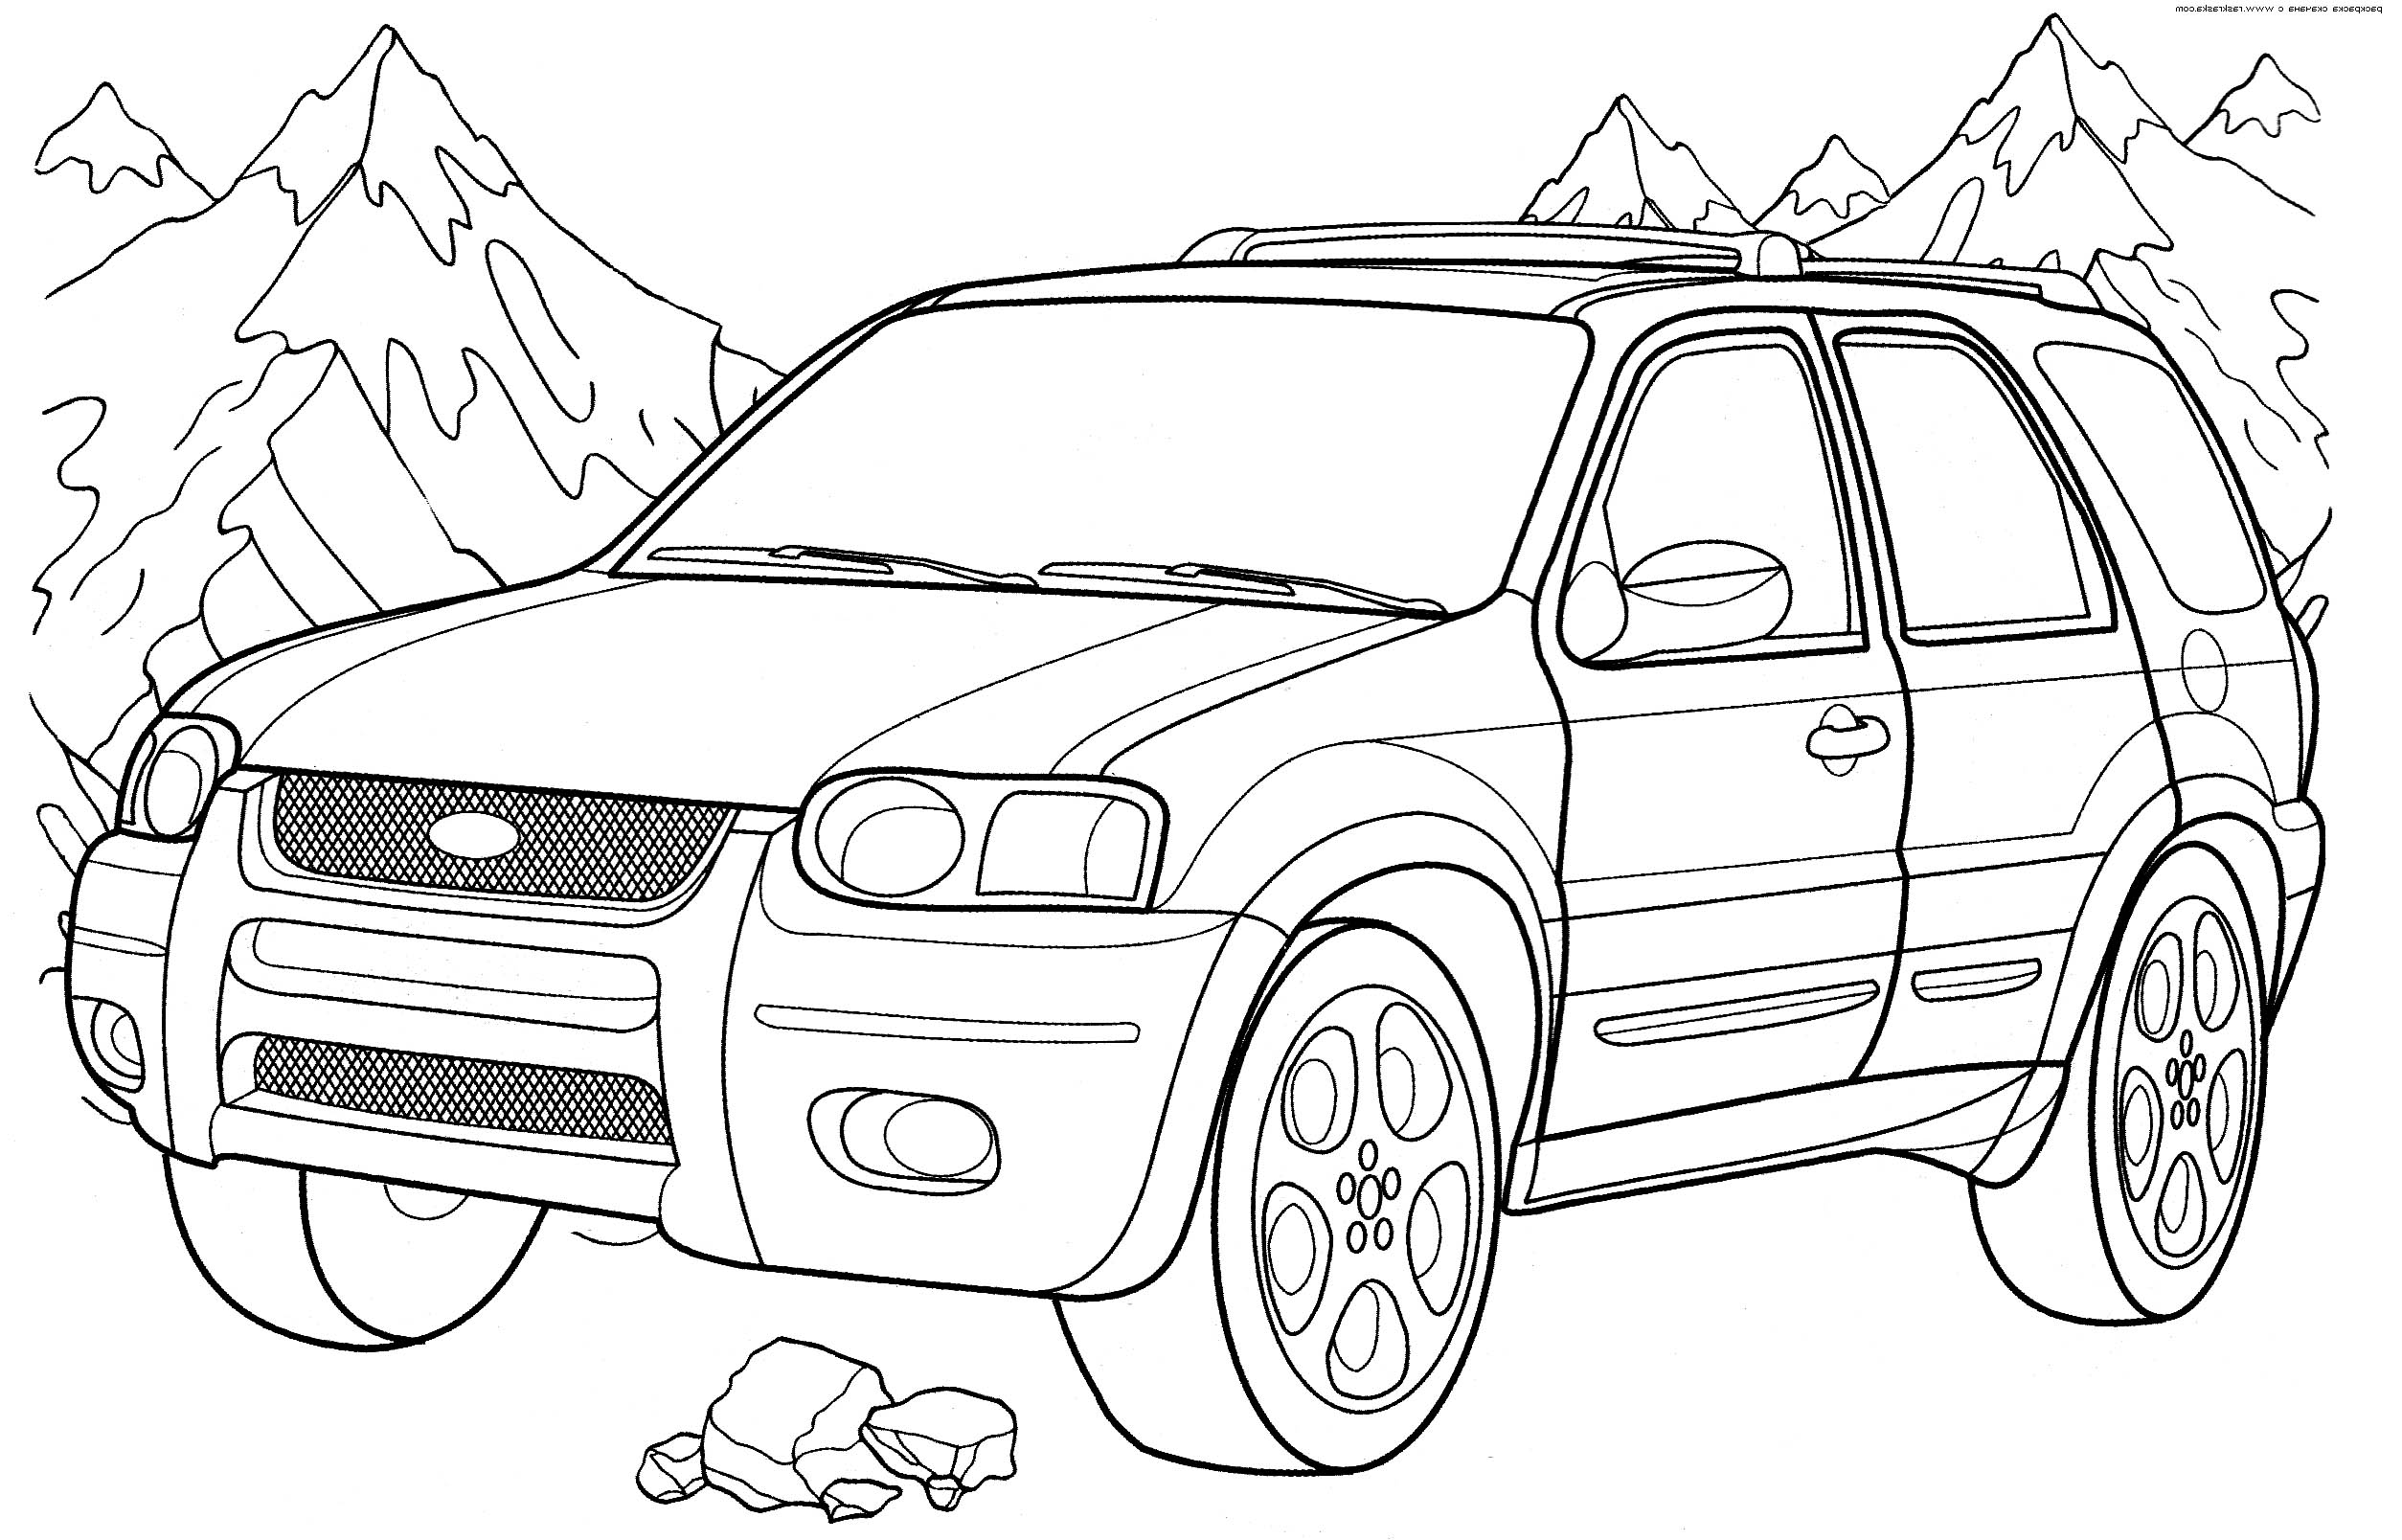 free car coloring pages car coloring pages best coloring pages for kids coloring car free pages